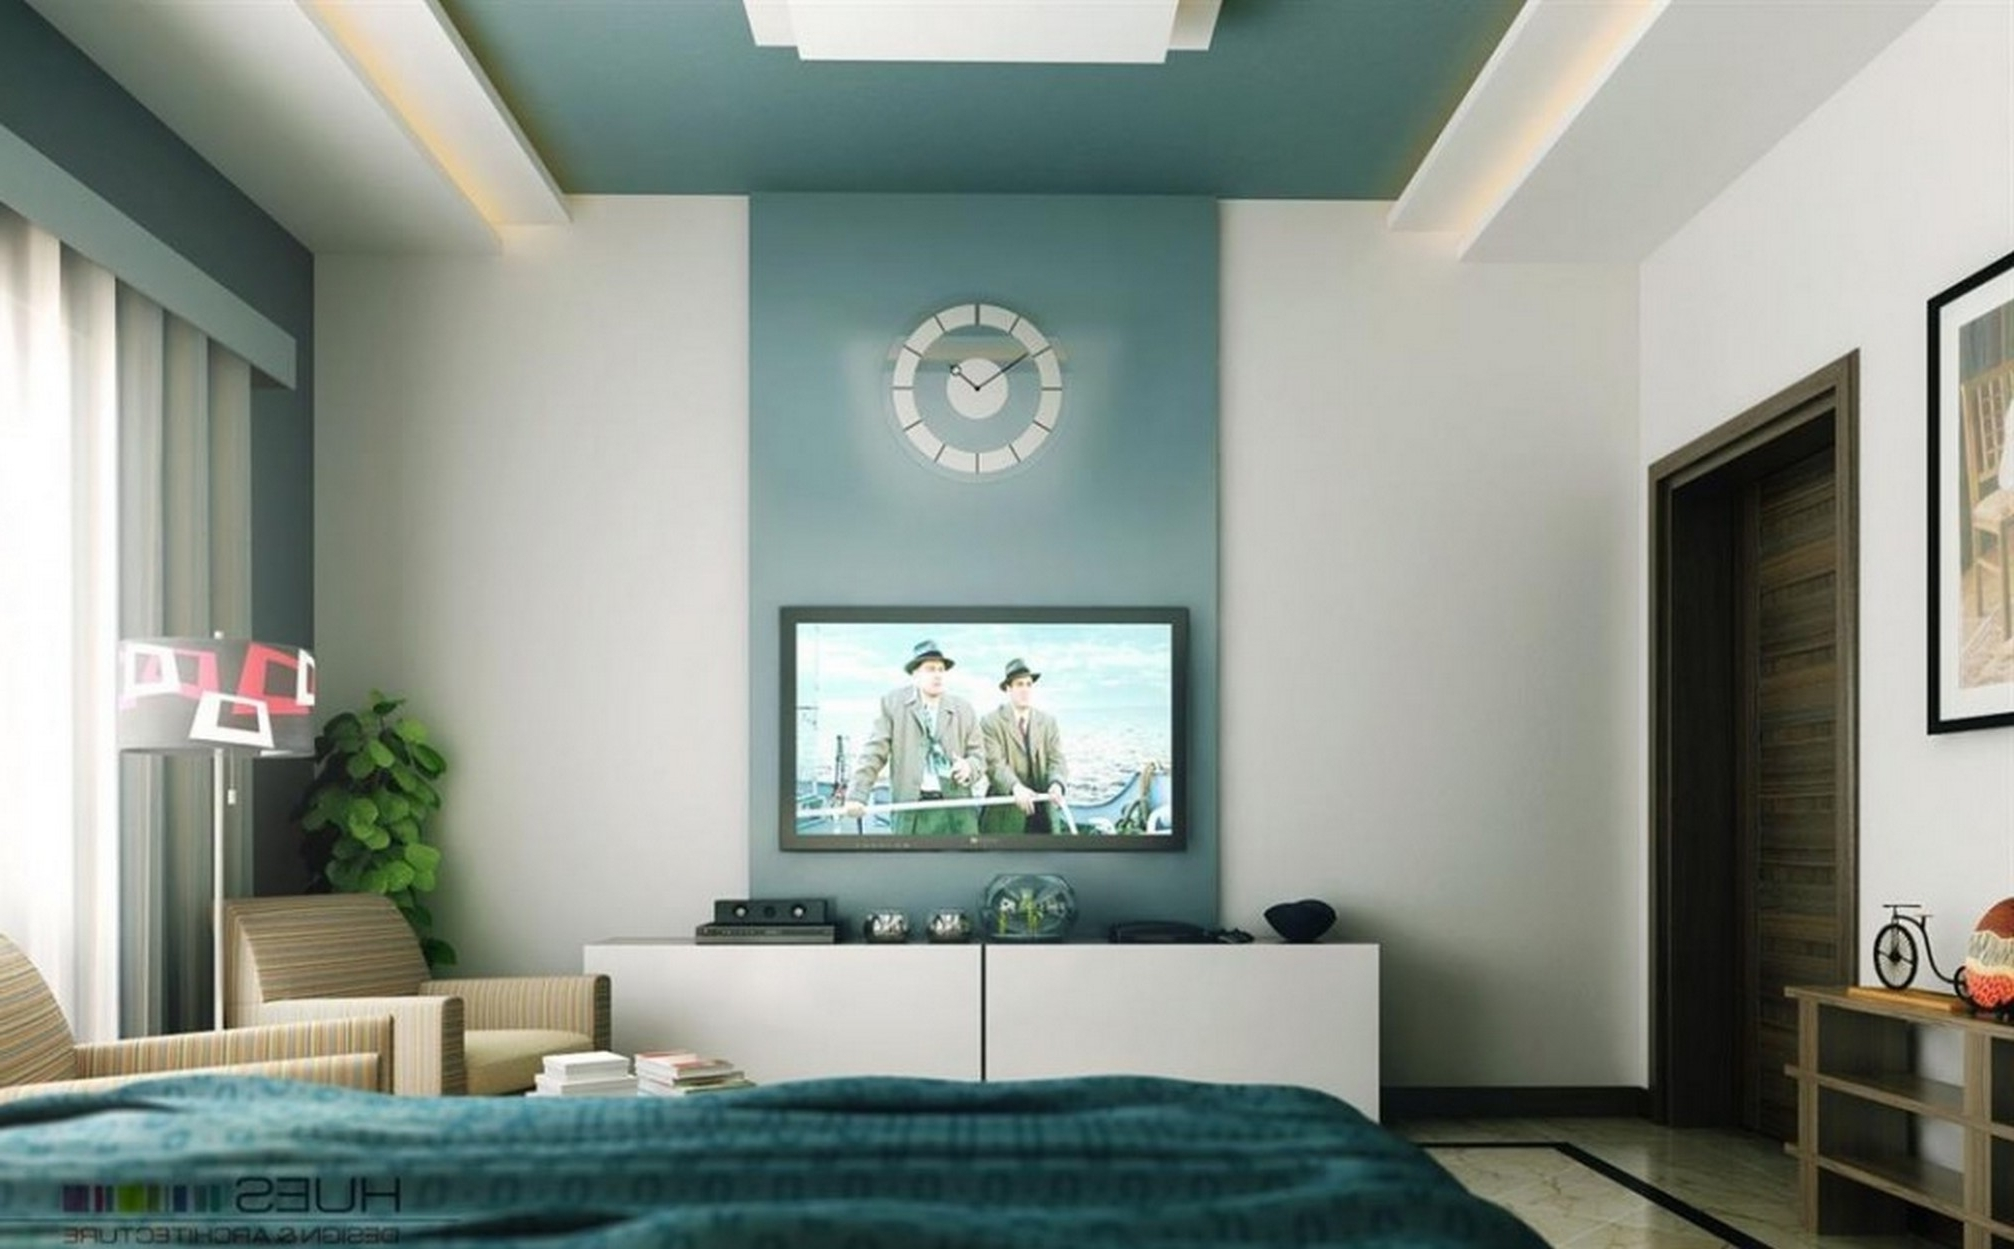 2017 Accent Wall Color For High Walls With Round Clock Ideas And Tv On With Neutral Color Wall Accents (View 1 of 15)